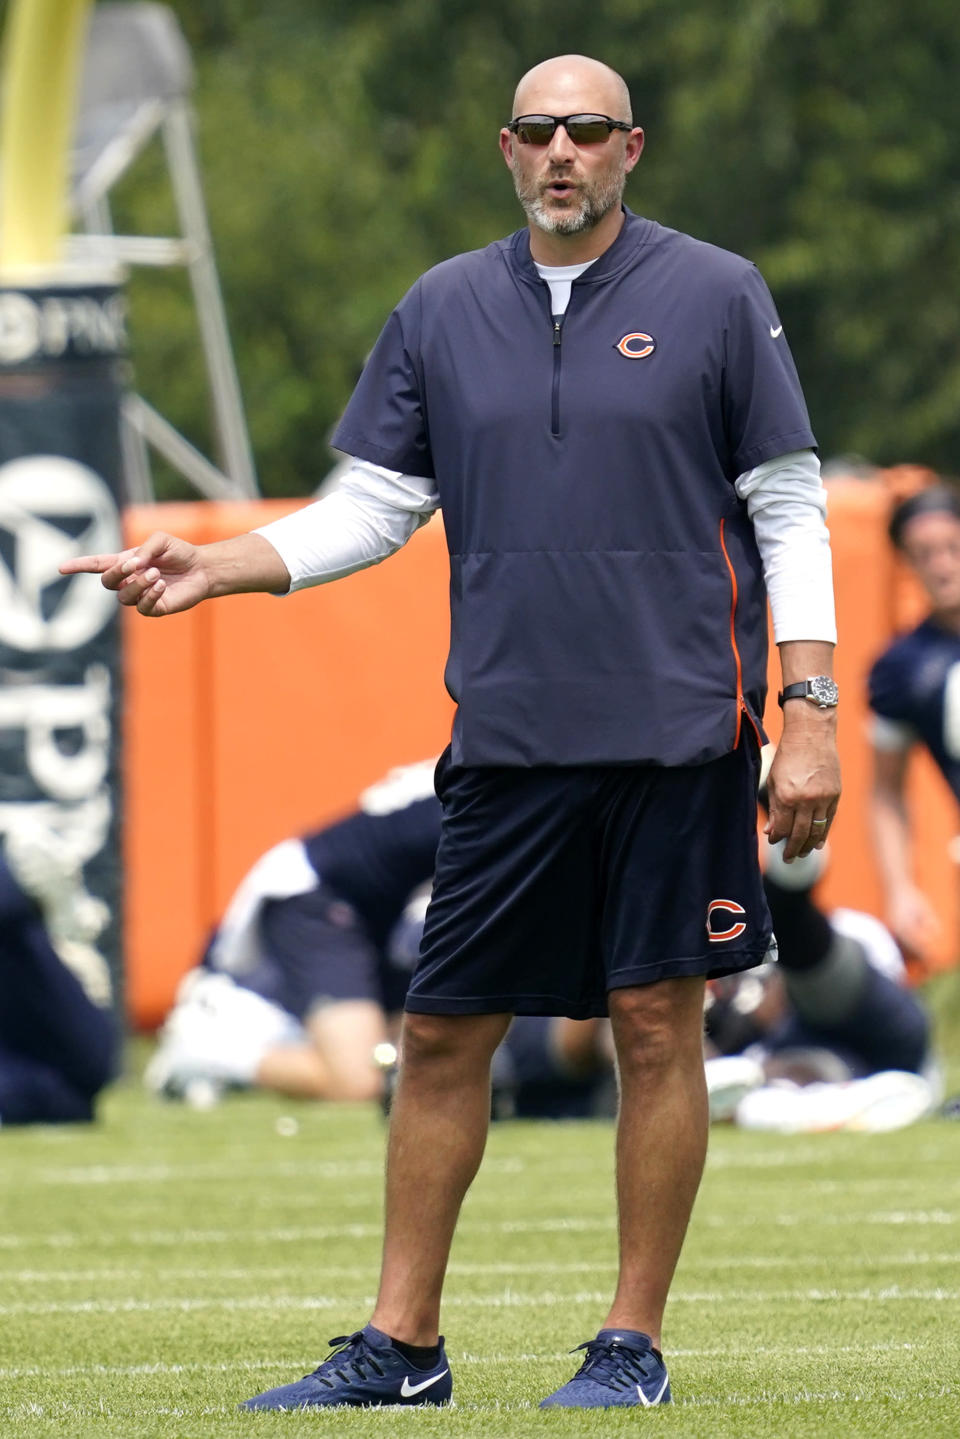 Chicago Bears head coach Matt Nagy talks to his team during NFL football practice in Lake Forest, Ill., Wednesday, July 28, 2021. (AP Photo/Nam Y. Huh)